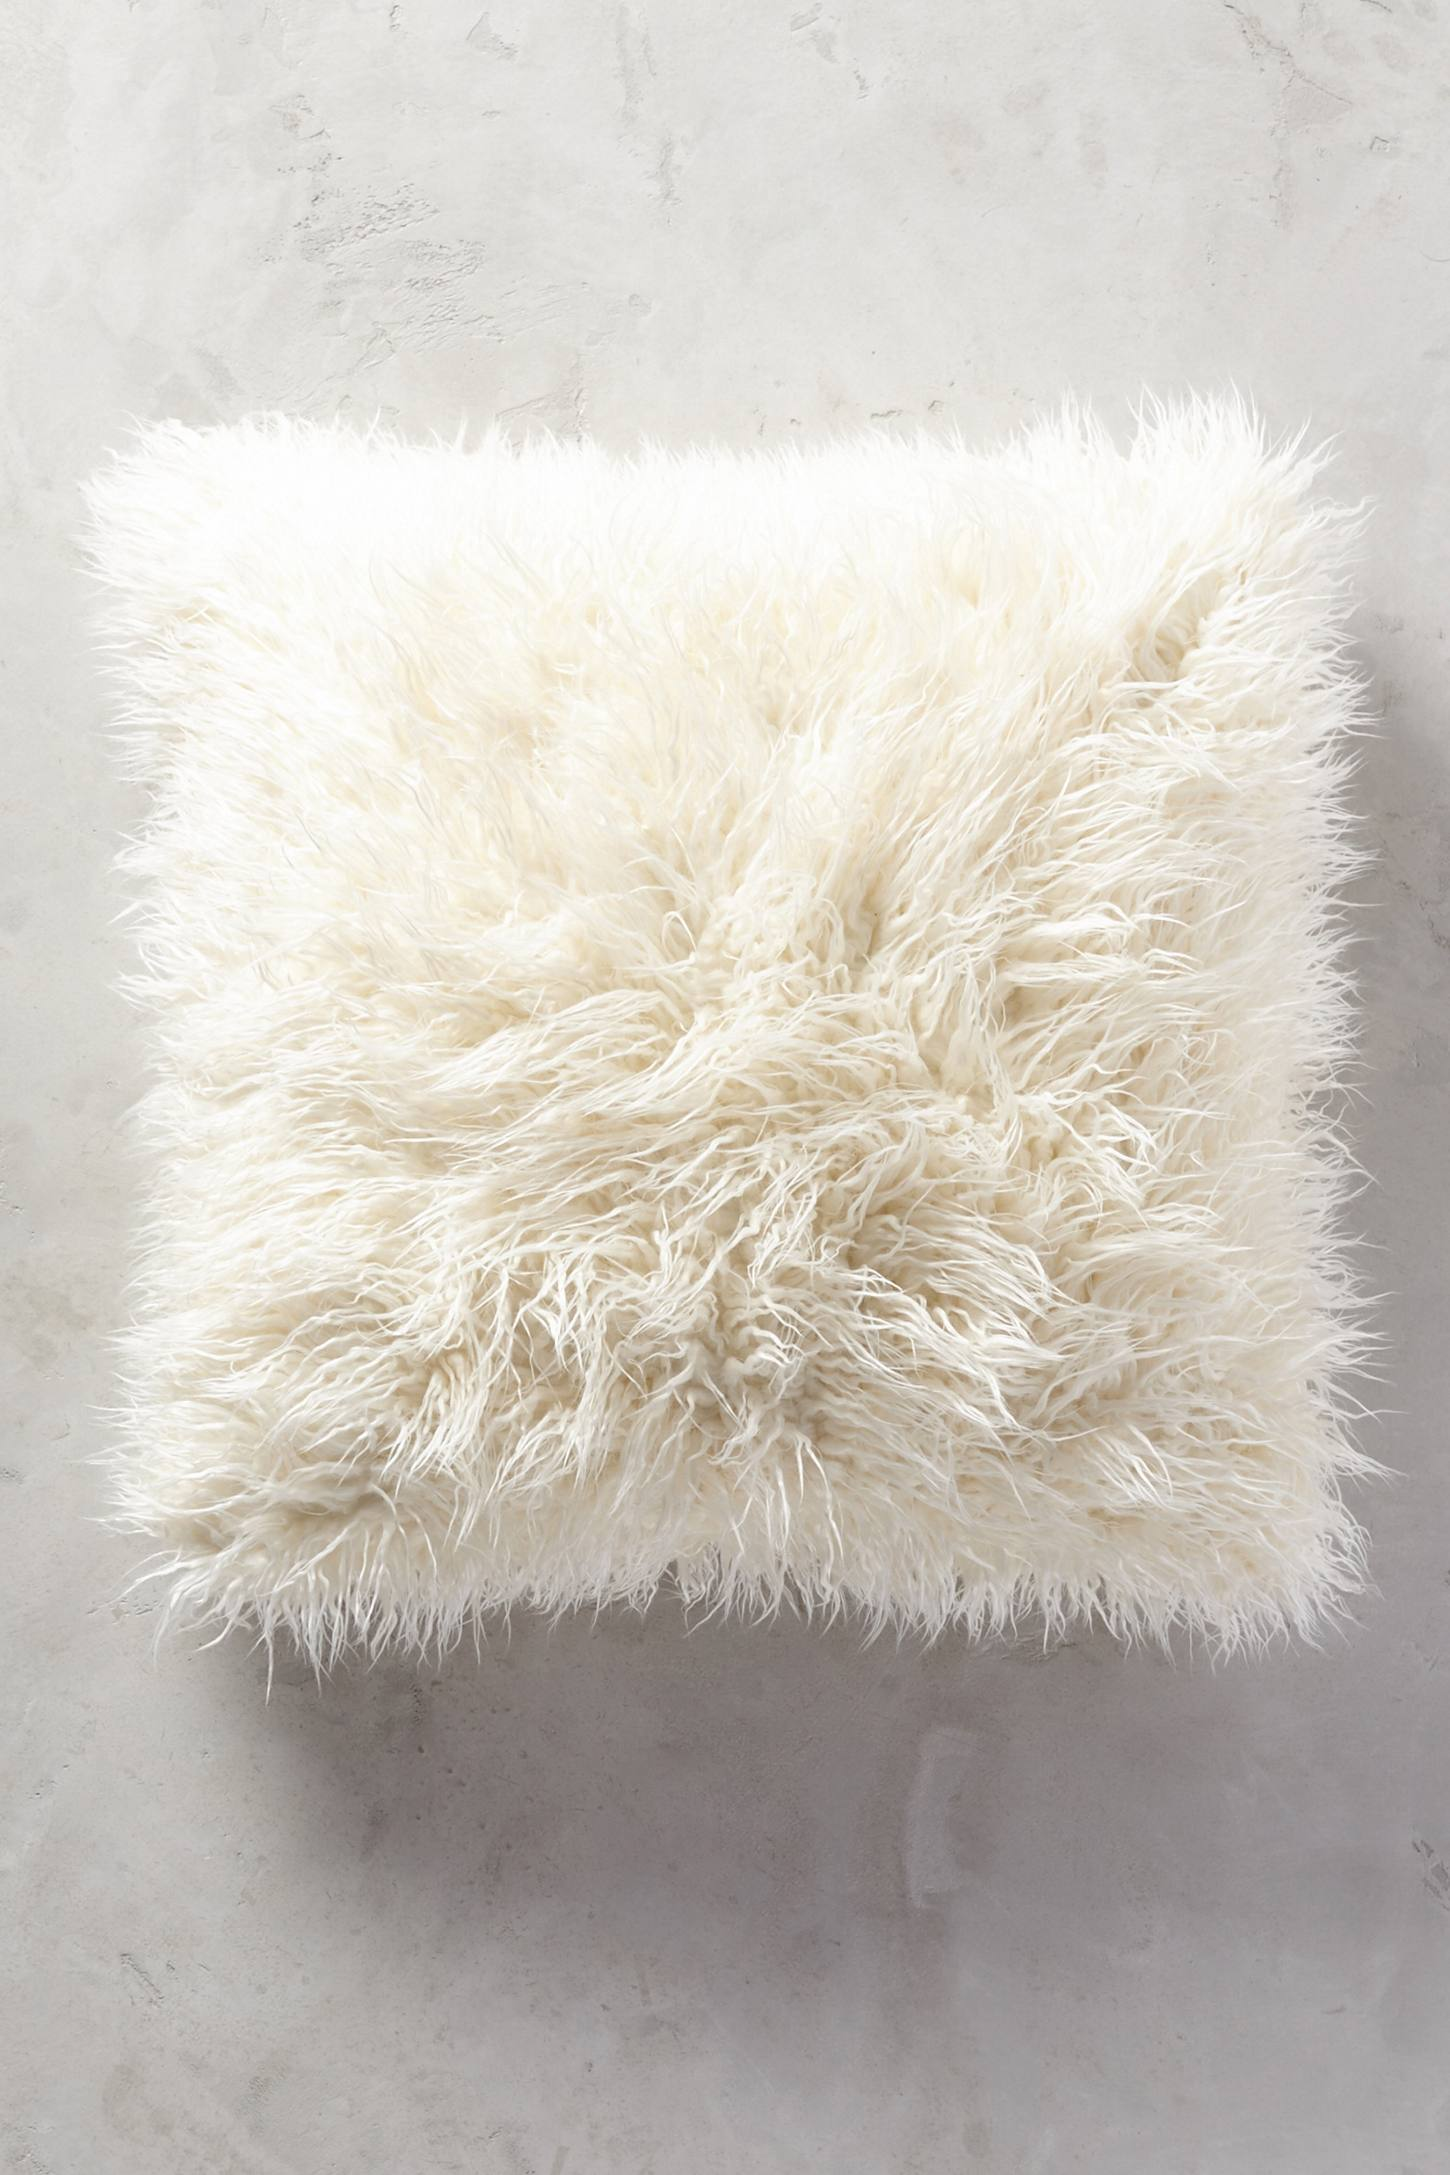 Shaggy pillow from Anthropologie